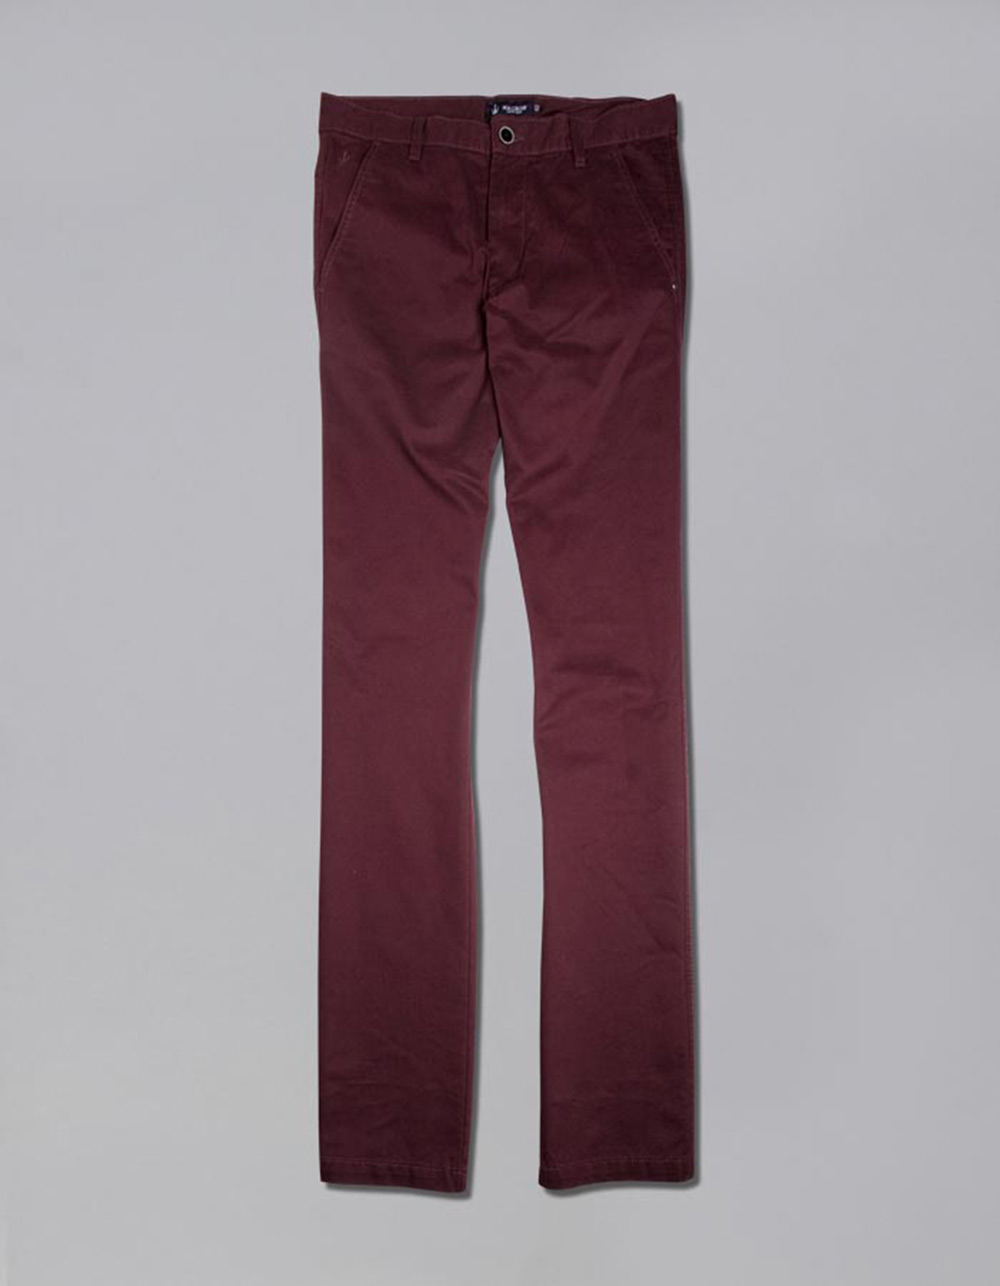 Garnet chinos trousers - Backside